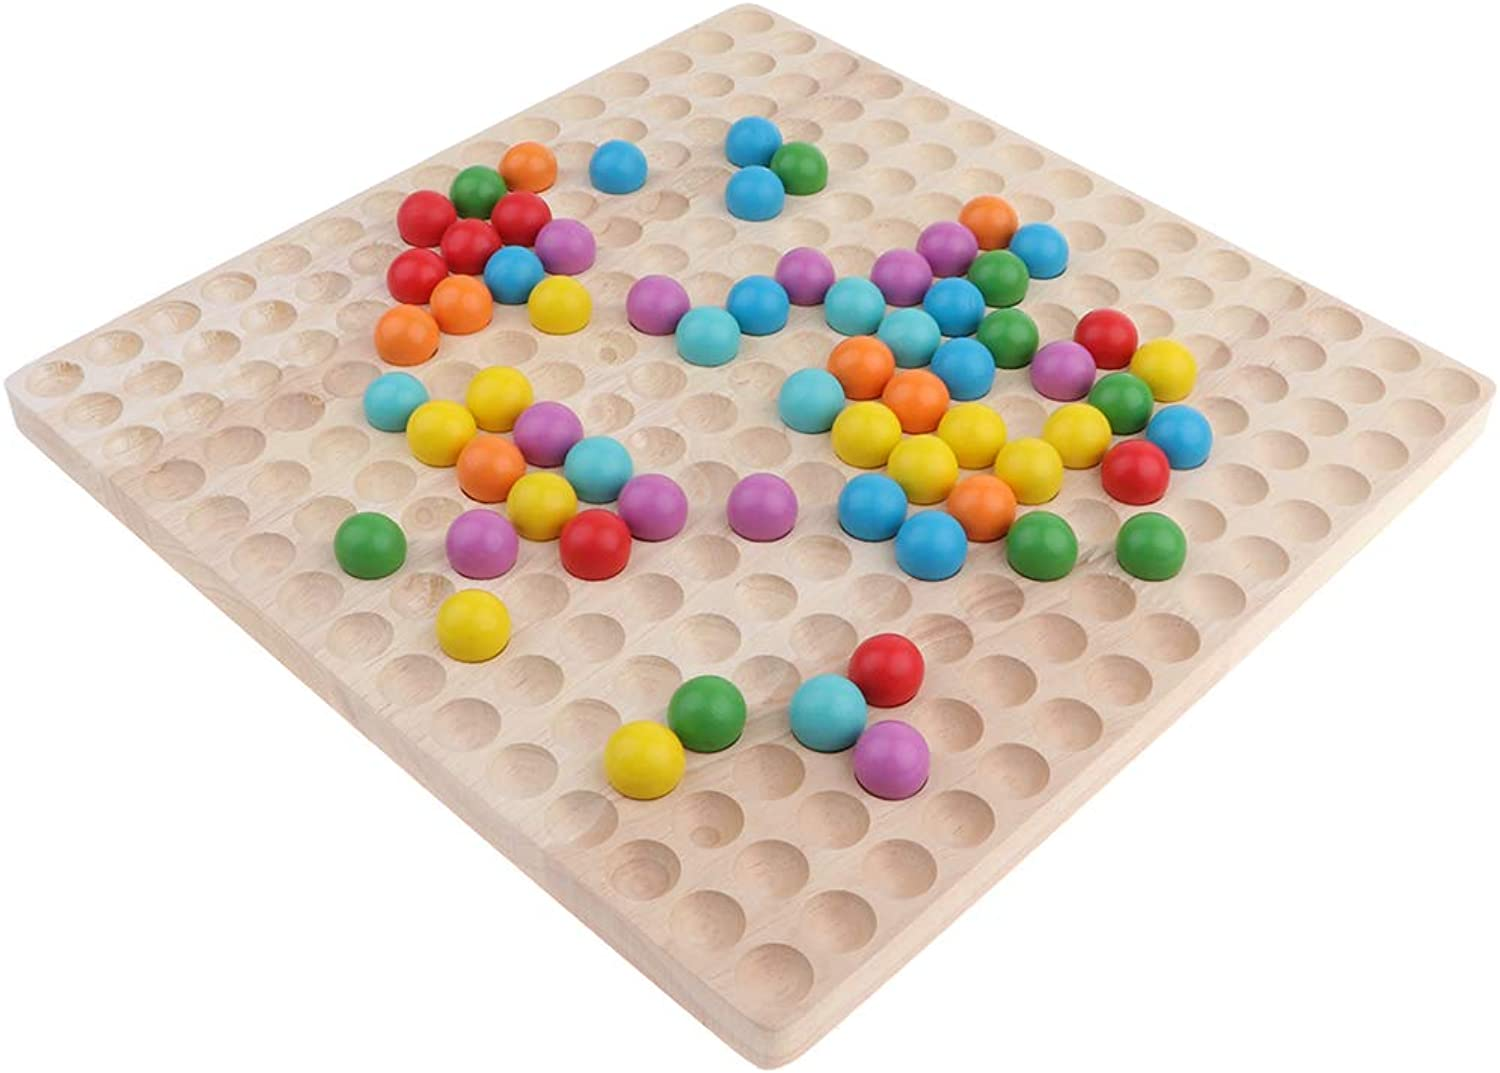 D DOLITY Beads Game Toy Birthday Gift, Developmental Toy for Kids, Hand-on Abilities Training Toy